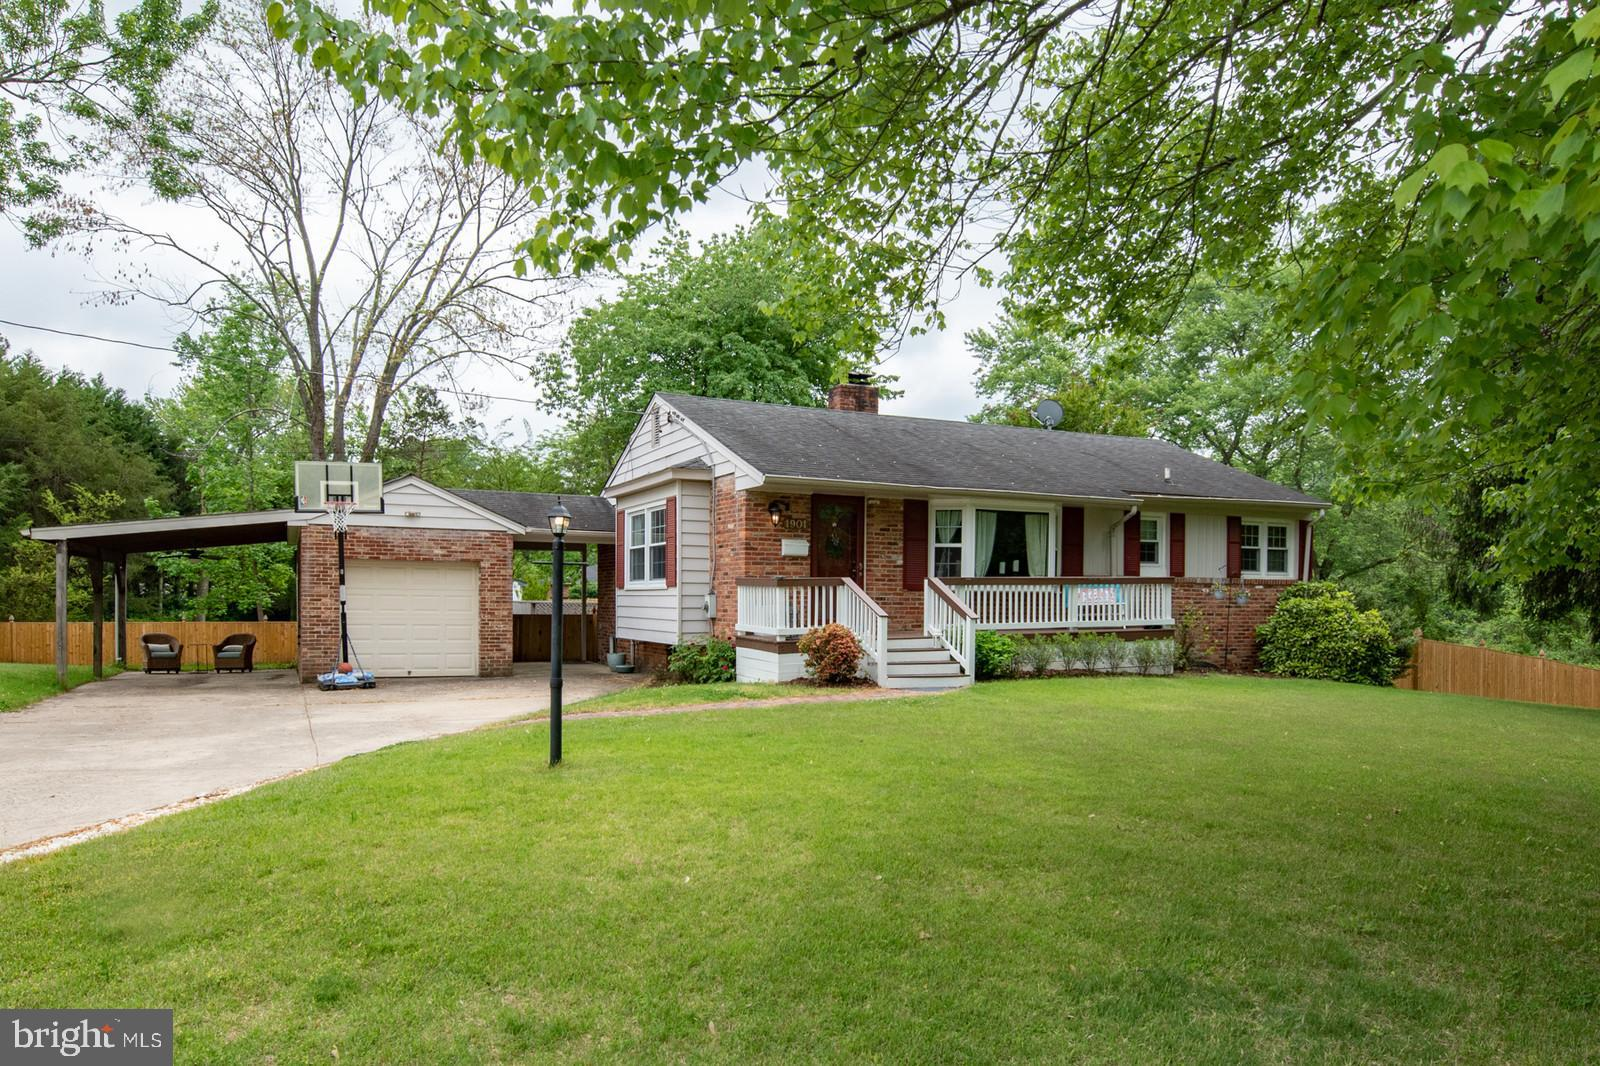 Large price adjustment! This two level home is larger than it looks.  Bring an Offer. New and improved in Waynewood school district.  Welcome to Paul Spring Parkway.  This Hollin Hall beauty sits up on a generous corner lot facing parkland and features four bedrooms and two full baths.  Recently and beautifully updated with a spacious newer (2017) kitchen with SS appliances, gas stove, tile floor, granite, breakfast bar and open to a bright living room;  enjoy entertaining in a separate, formal dining room;  other updates include the main bathroom, lower level bathroom with large shower stall and new tile flooring;  newer addition of charming front porch, bay window with window seat in the living room;  the bedrooms have been freshly painted, and the hardwood floors are gleaming on main level; enjoy two fireplaces - one gas, one wood-burning; double driveway with garage AND carport make parking a breeze.  Spend outdoor time on the private rear deck.  The back and side yards are fully fenced and there is a new storage shed; Walk to historic Hollin Hall Shopping Center with restaurants and shops; Close to Ft. Belvoir, Old Town and easy access to the Beltway.  11Y Bus into DC.  Home Warranty provided by Seller. Only 8 miles to new Amazon HQ, 4 miles to Ft Belvoir